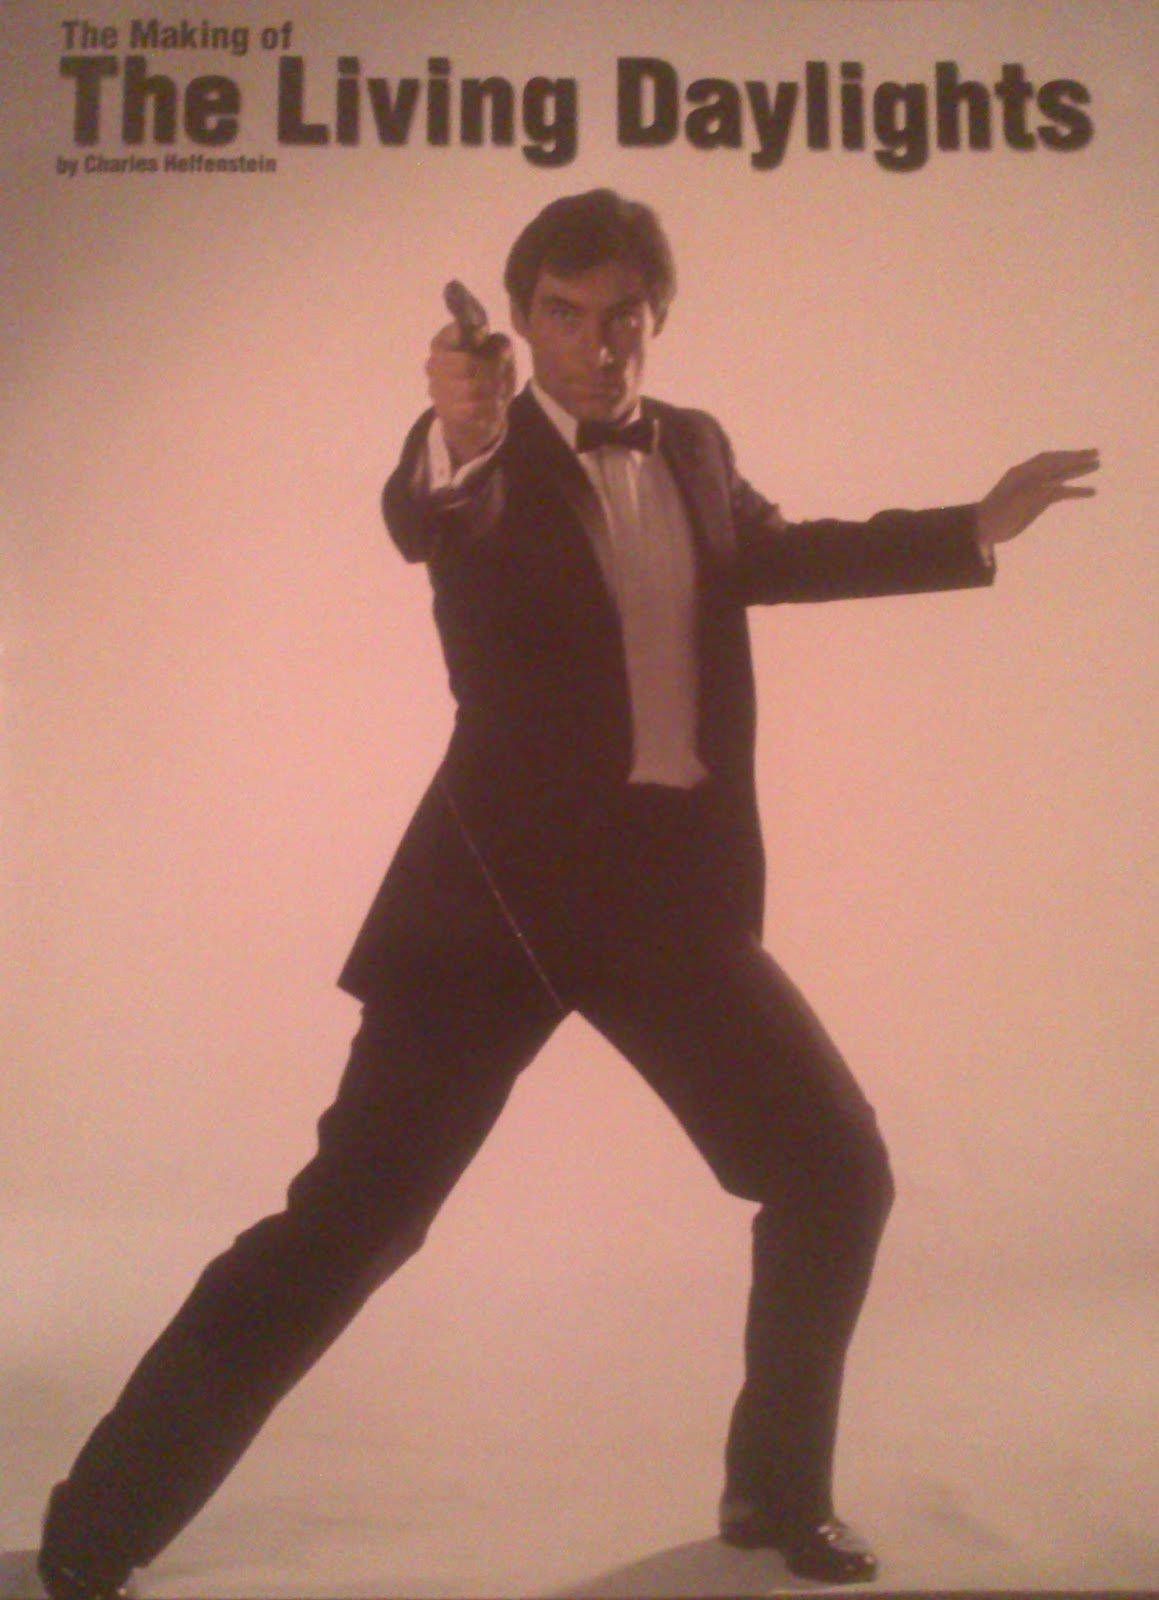 The Makings Of A Modern Bedroom: JAMES BOND MEMES: The Making Of The Living Daylights